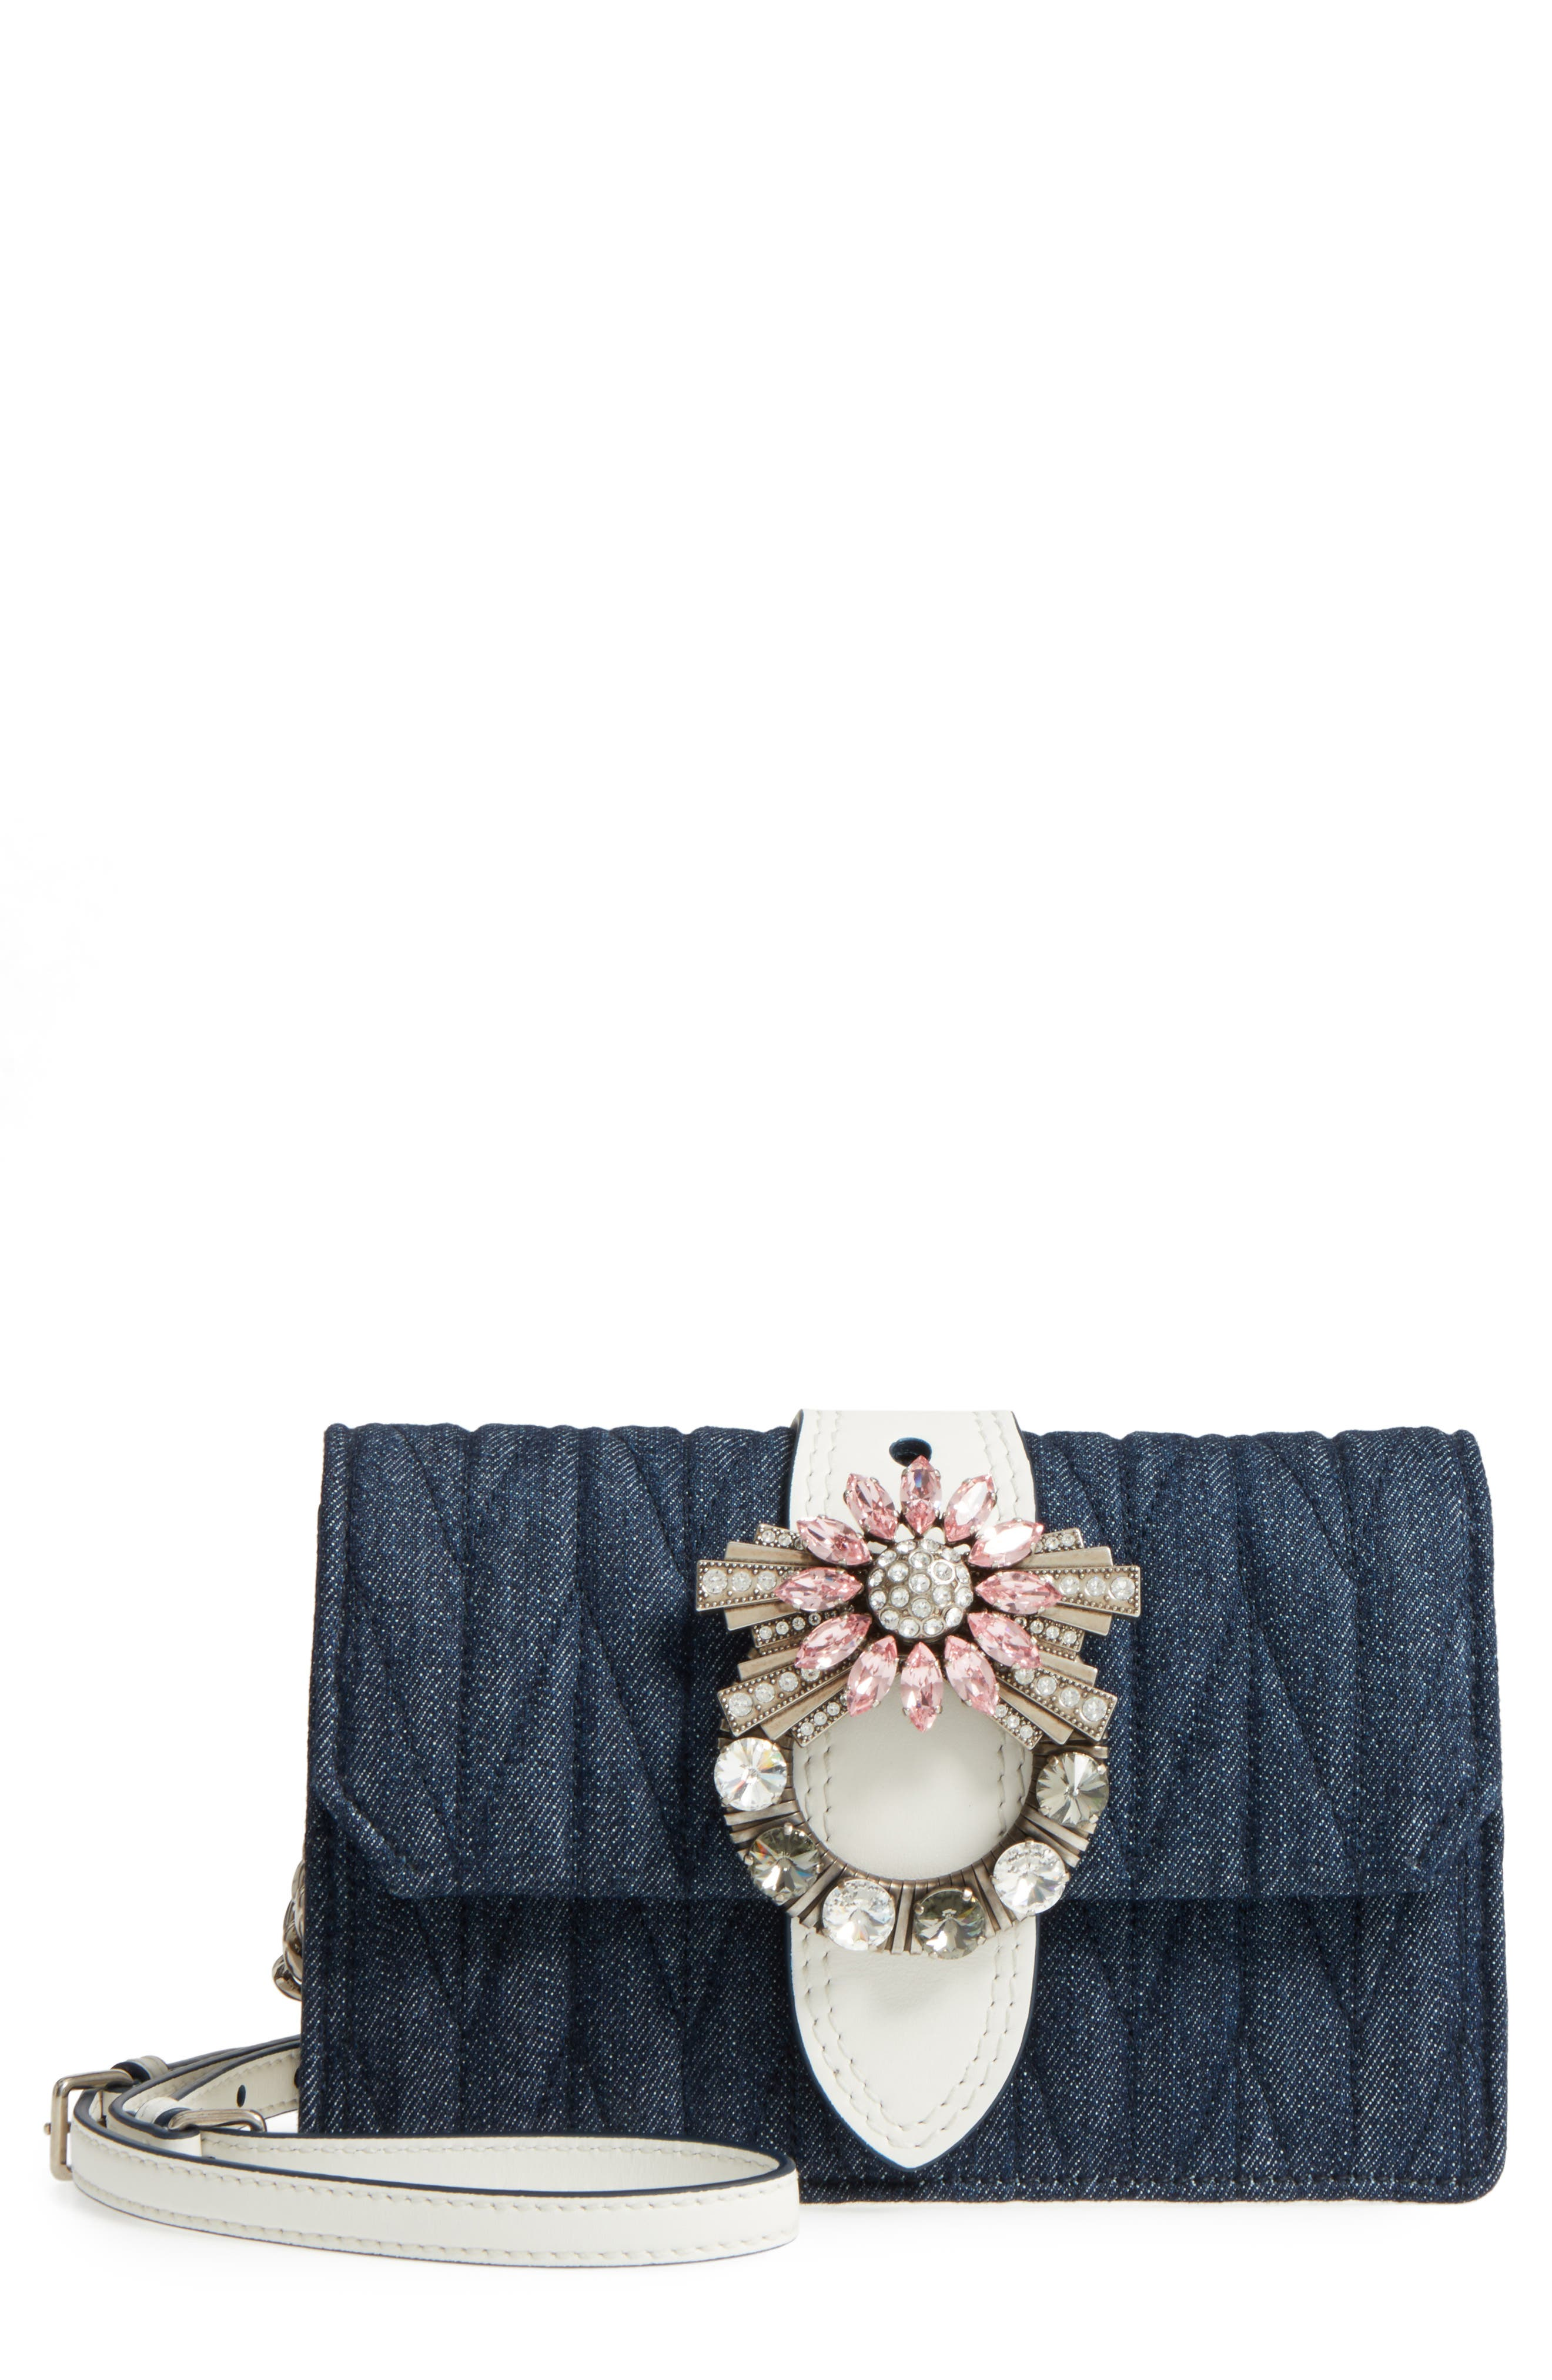 Matelassé Denim Embellished Shoulder Bag,                         Main,                         color, Blu/ Bianco